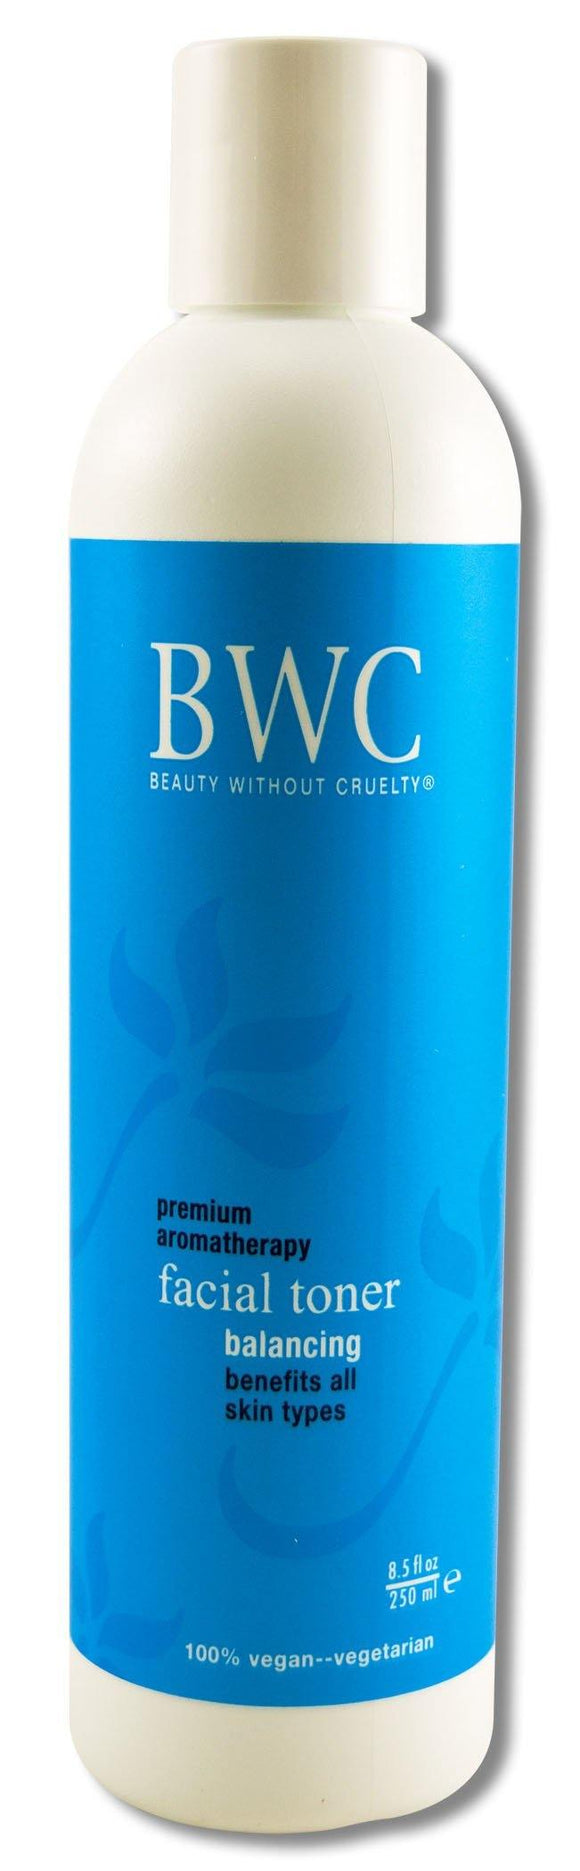 Beauty without Cruelty Aromatherapy Balancing Facial Toner, Alcohol Free, 8.5-Ounces - Vitamins Emporium